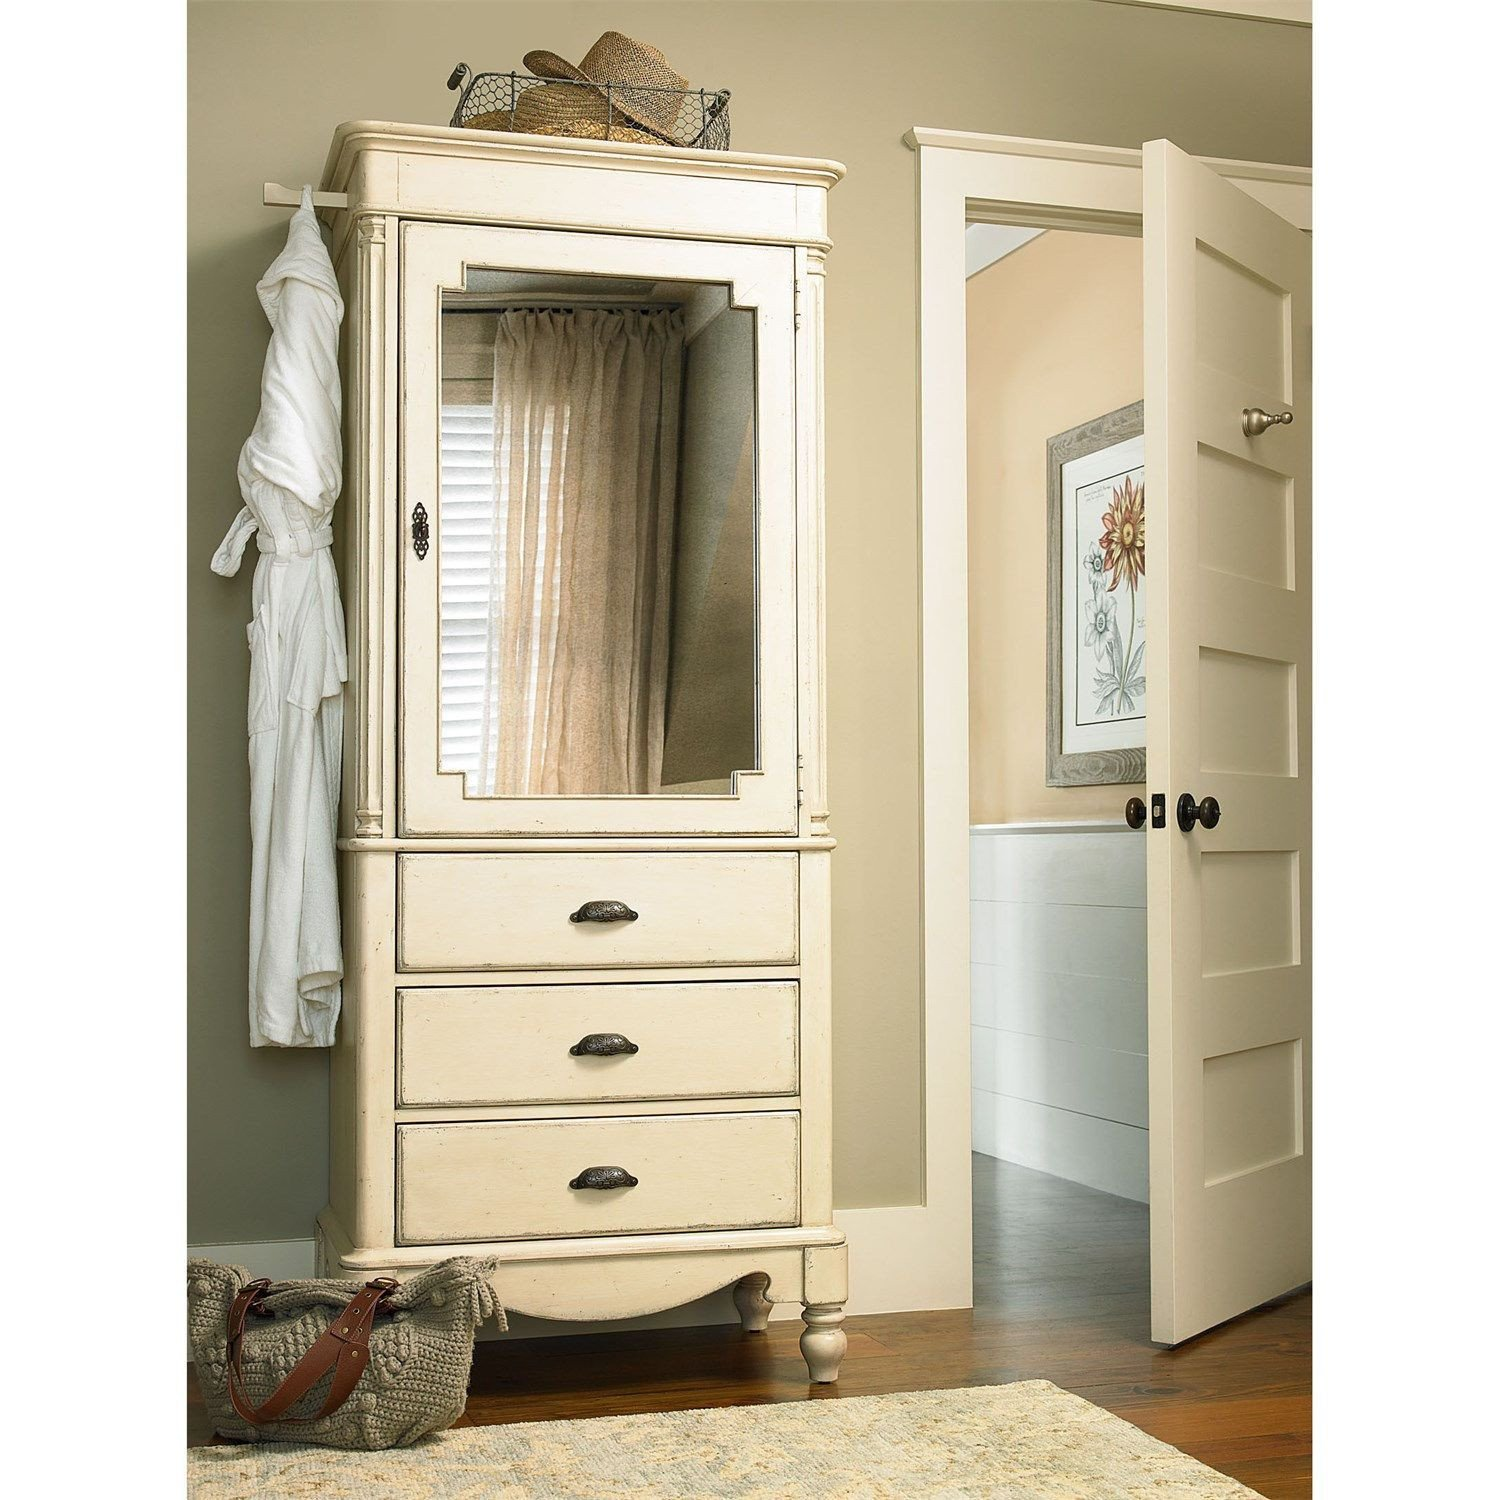 Paula Deen Bedroom Furniture Fresh Paula Deen Furniture River House Dressing Armoire